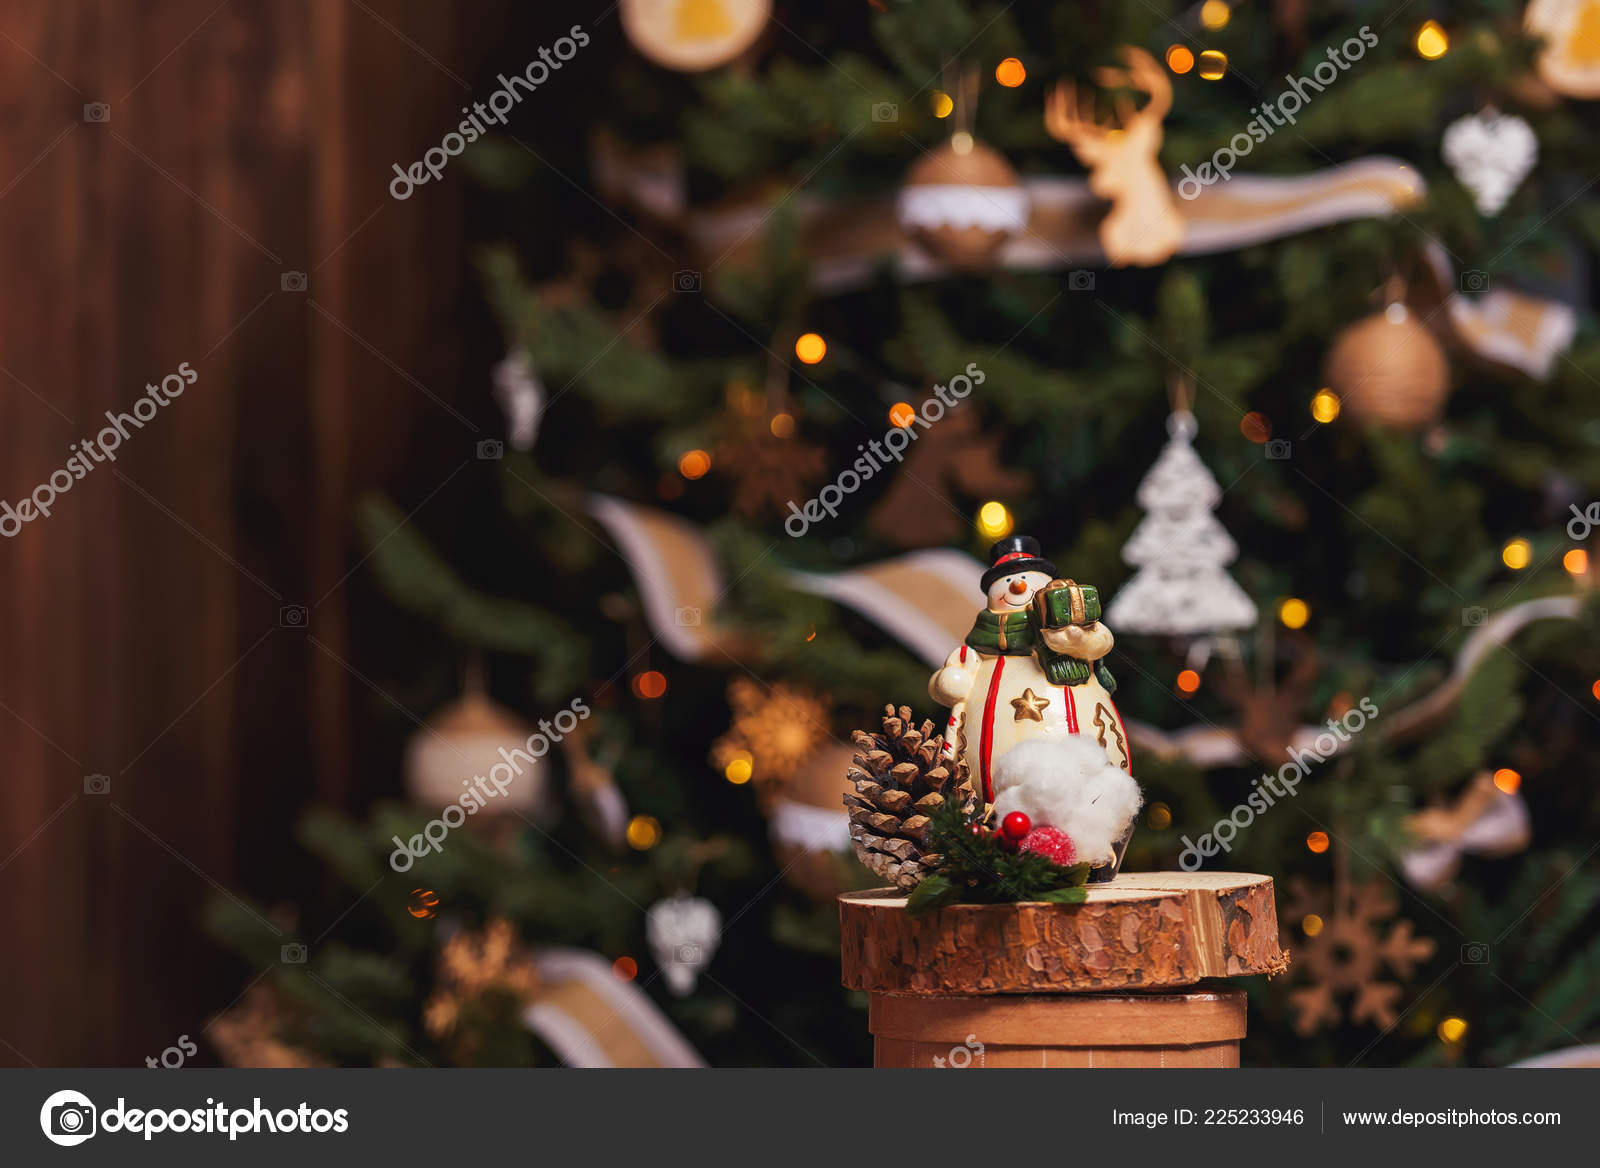 Snowman Background Christmas Tree Rustic Christmas Decorations